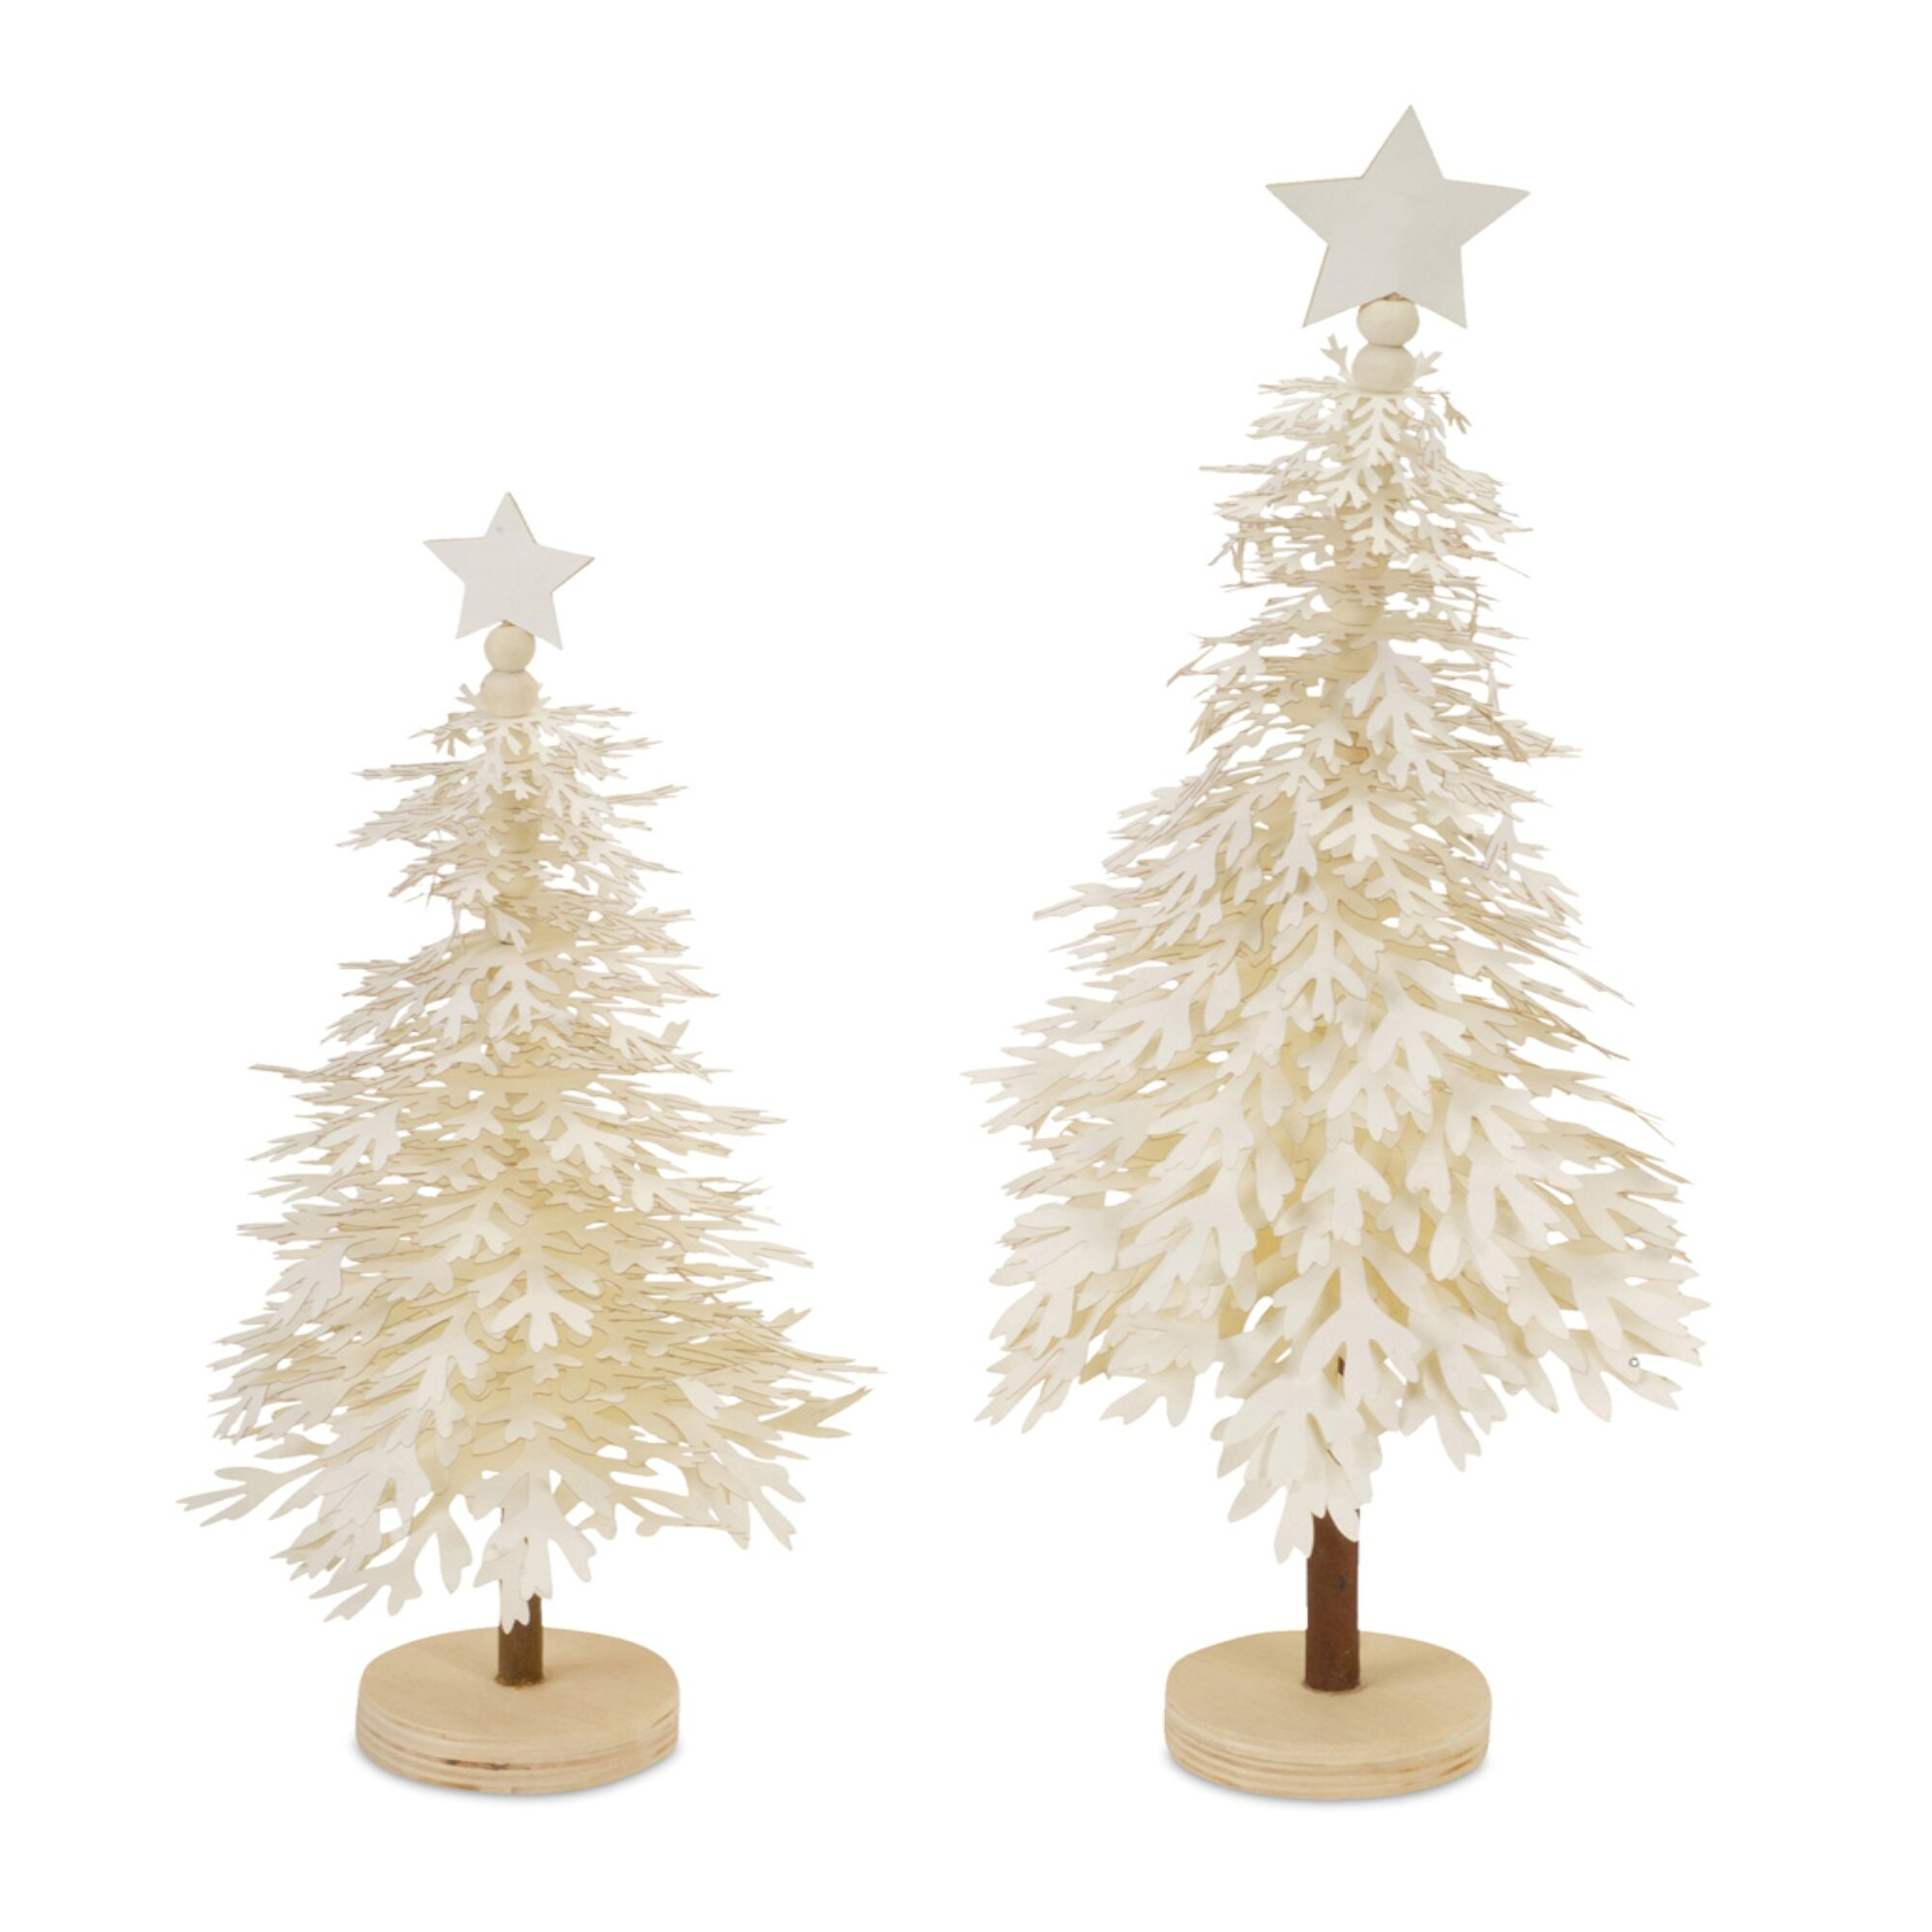 6d6a0e59f03 Details about The Holiday Aisle 4 Piece Paper Layered Snowflake Tree Set